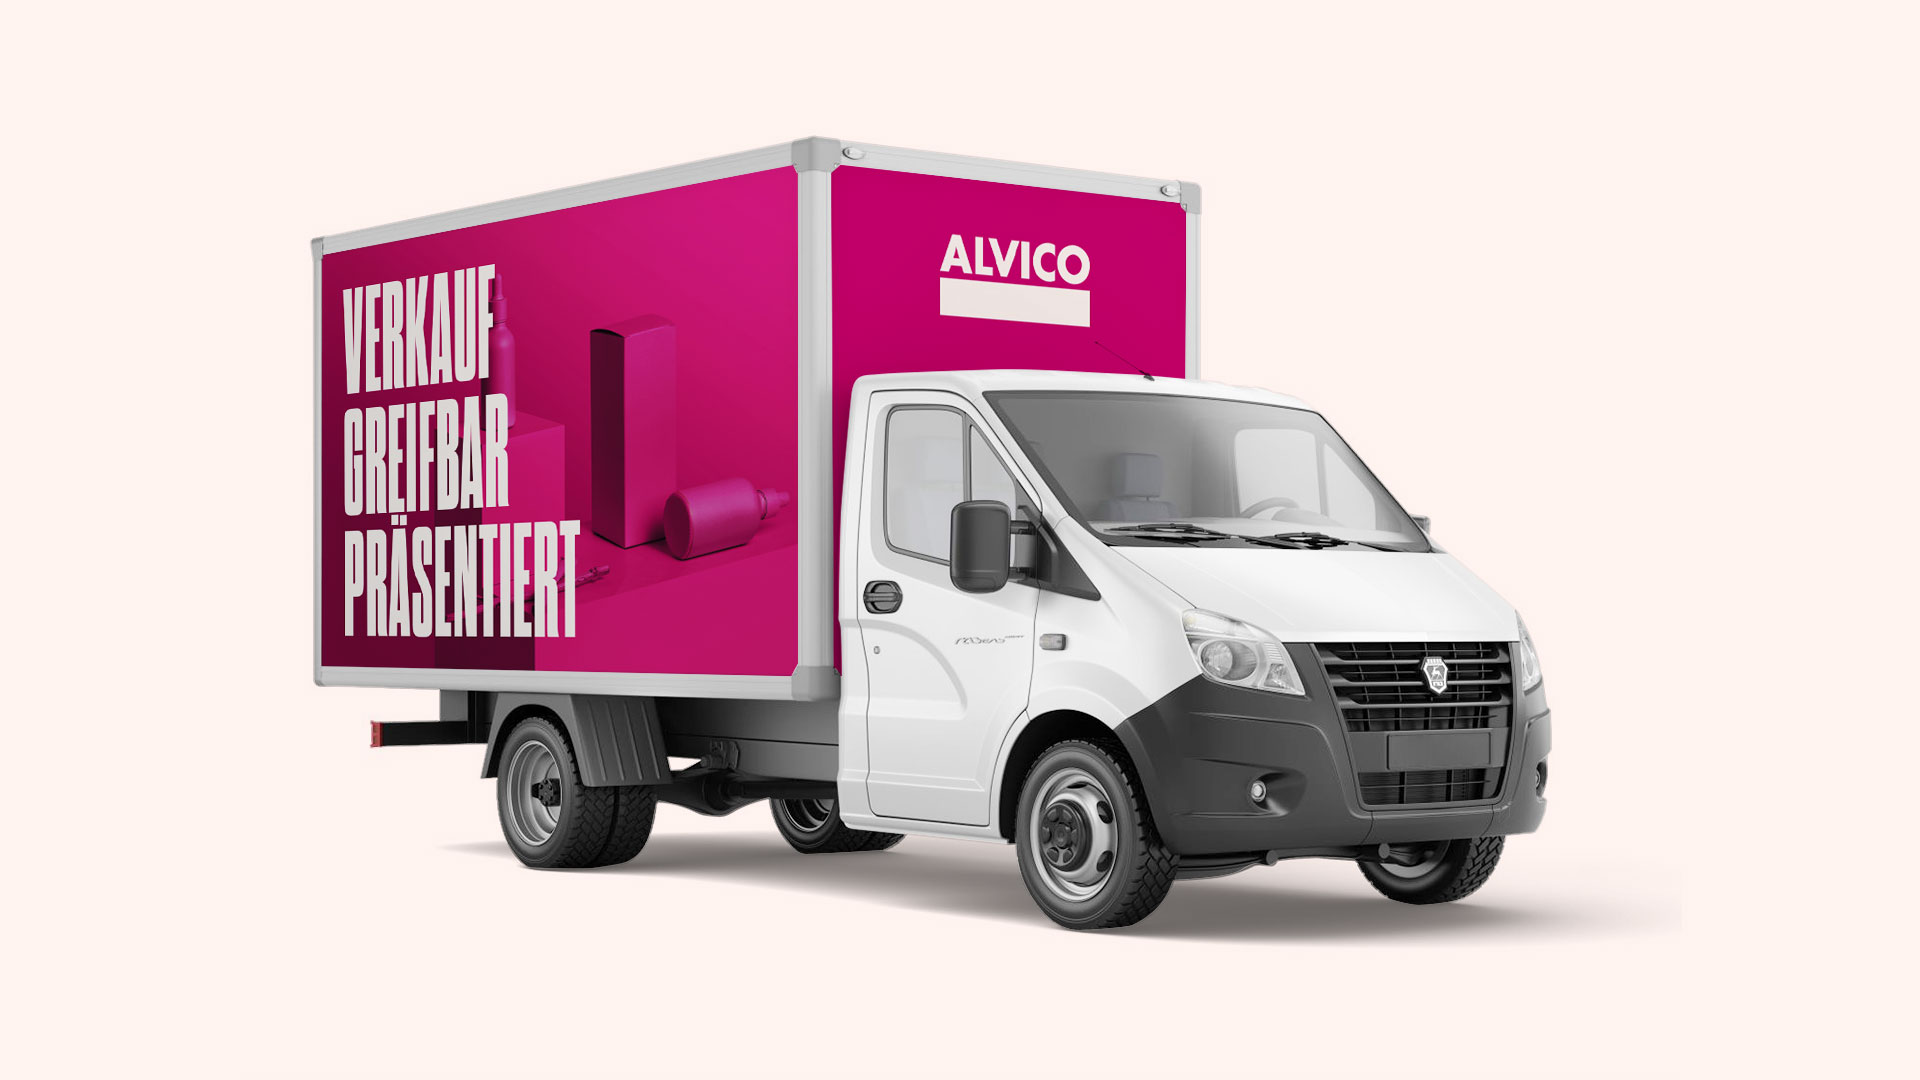 ALVICO Transporter Design by ESE Media